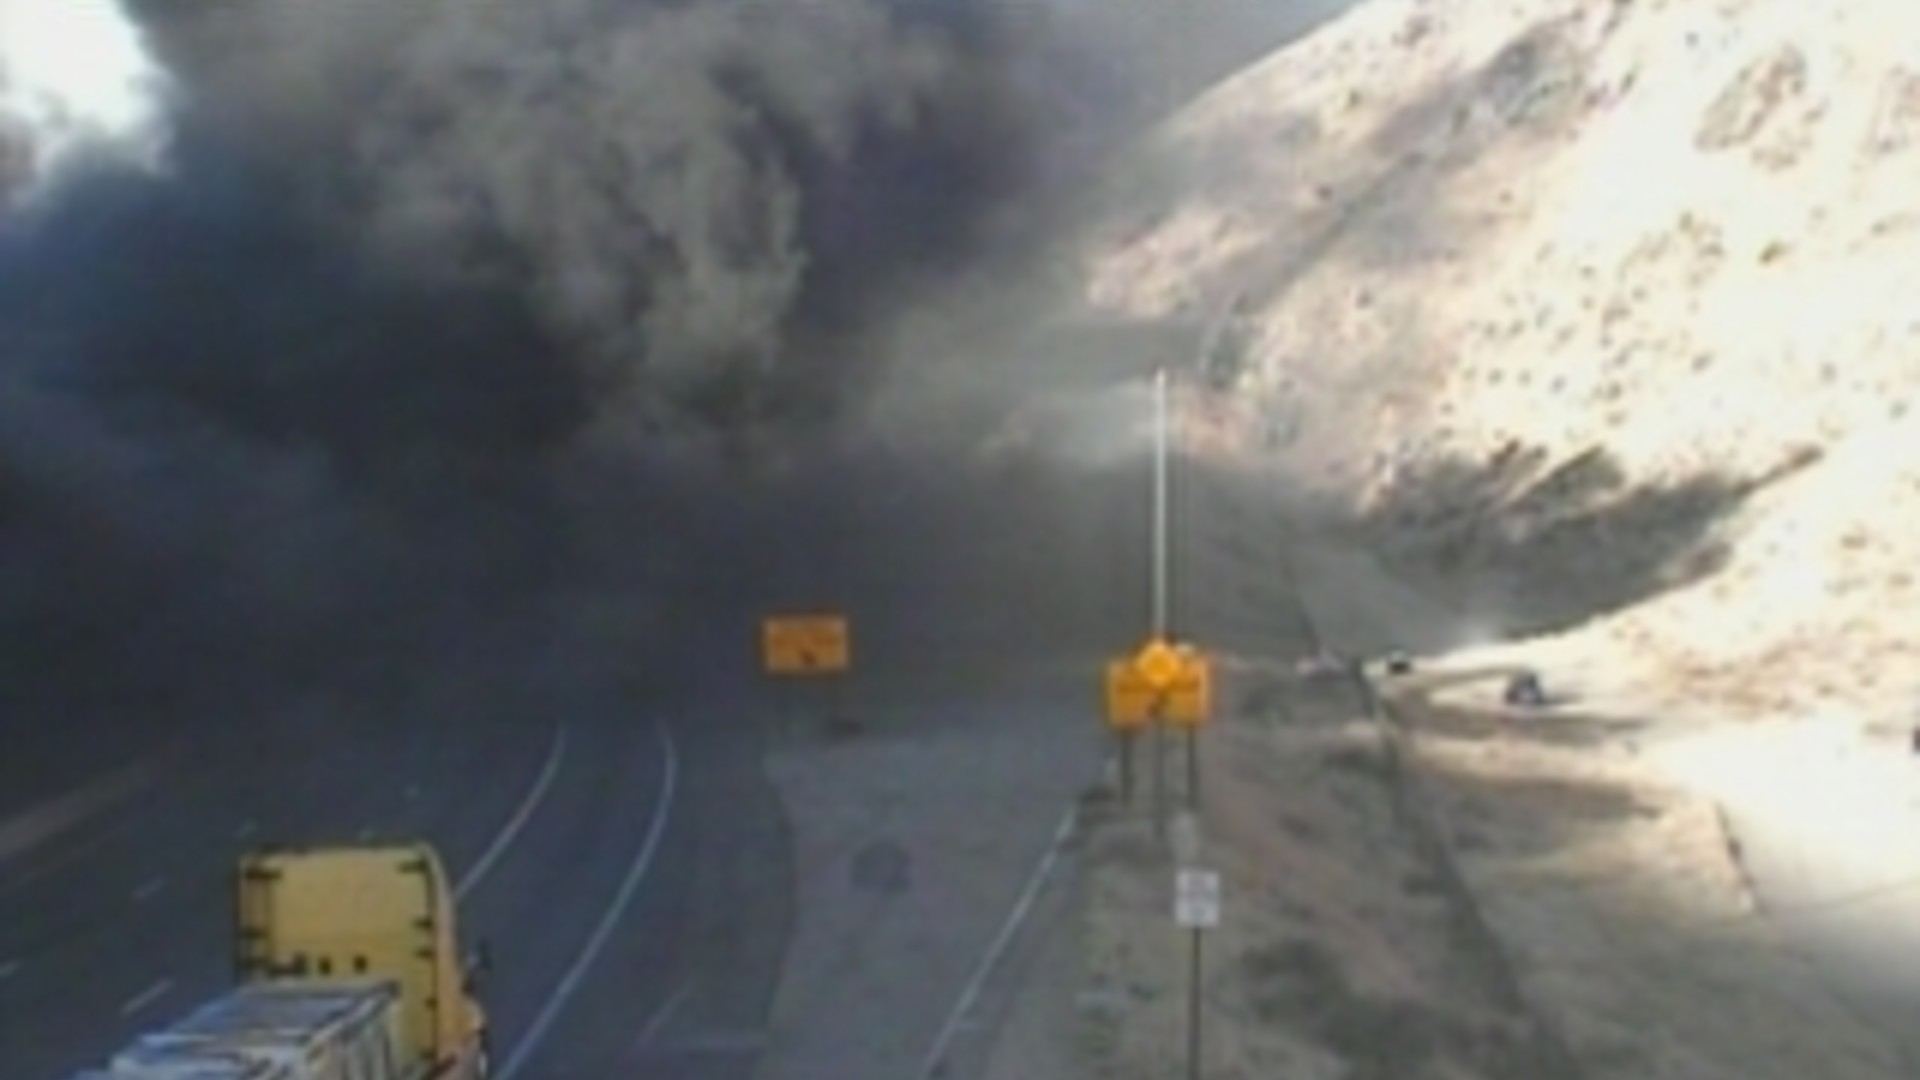 A big rig fire spread to a nearby hillside in the Grapevine along the 5 Freeway on Dec. 2, 2020. (Caltrans)